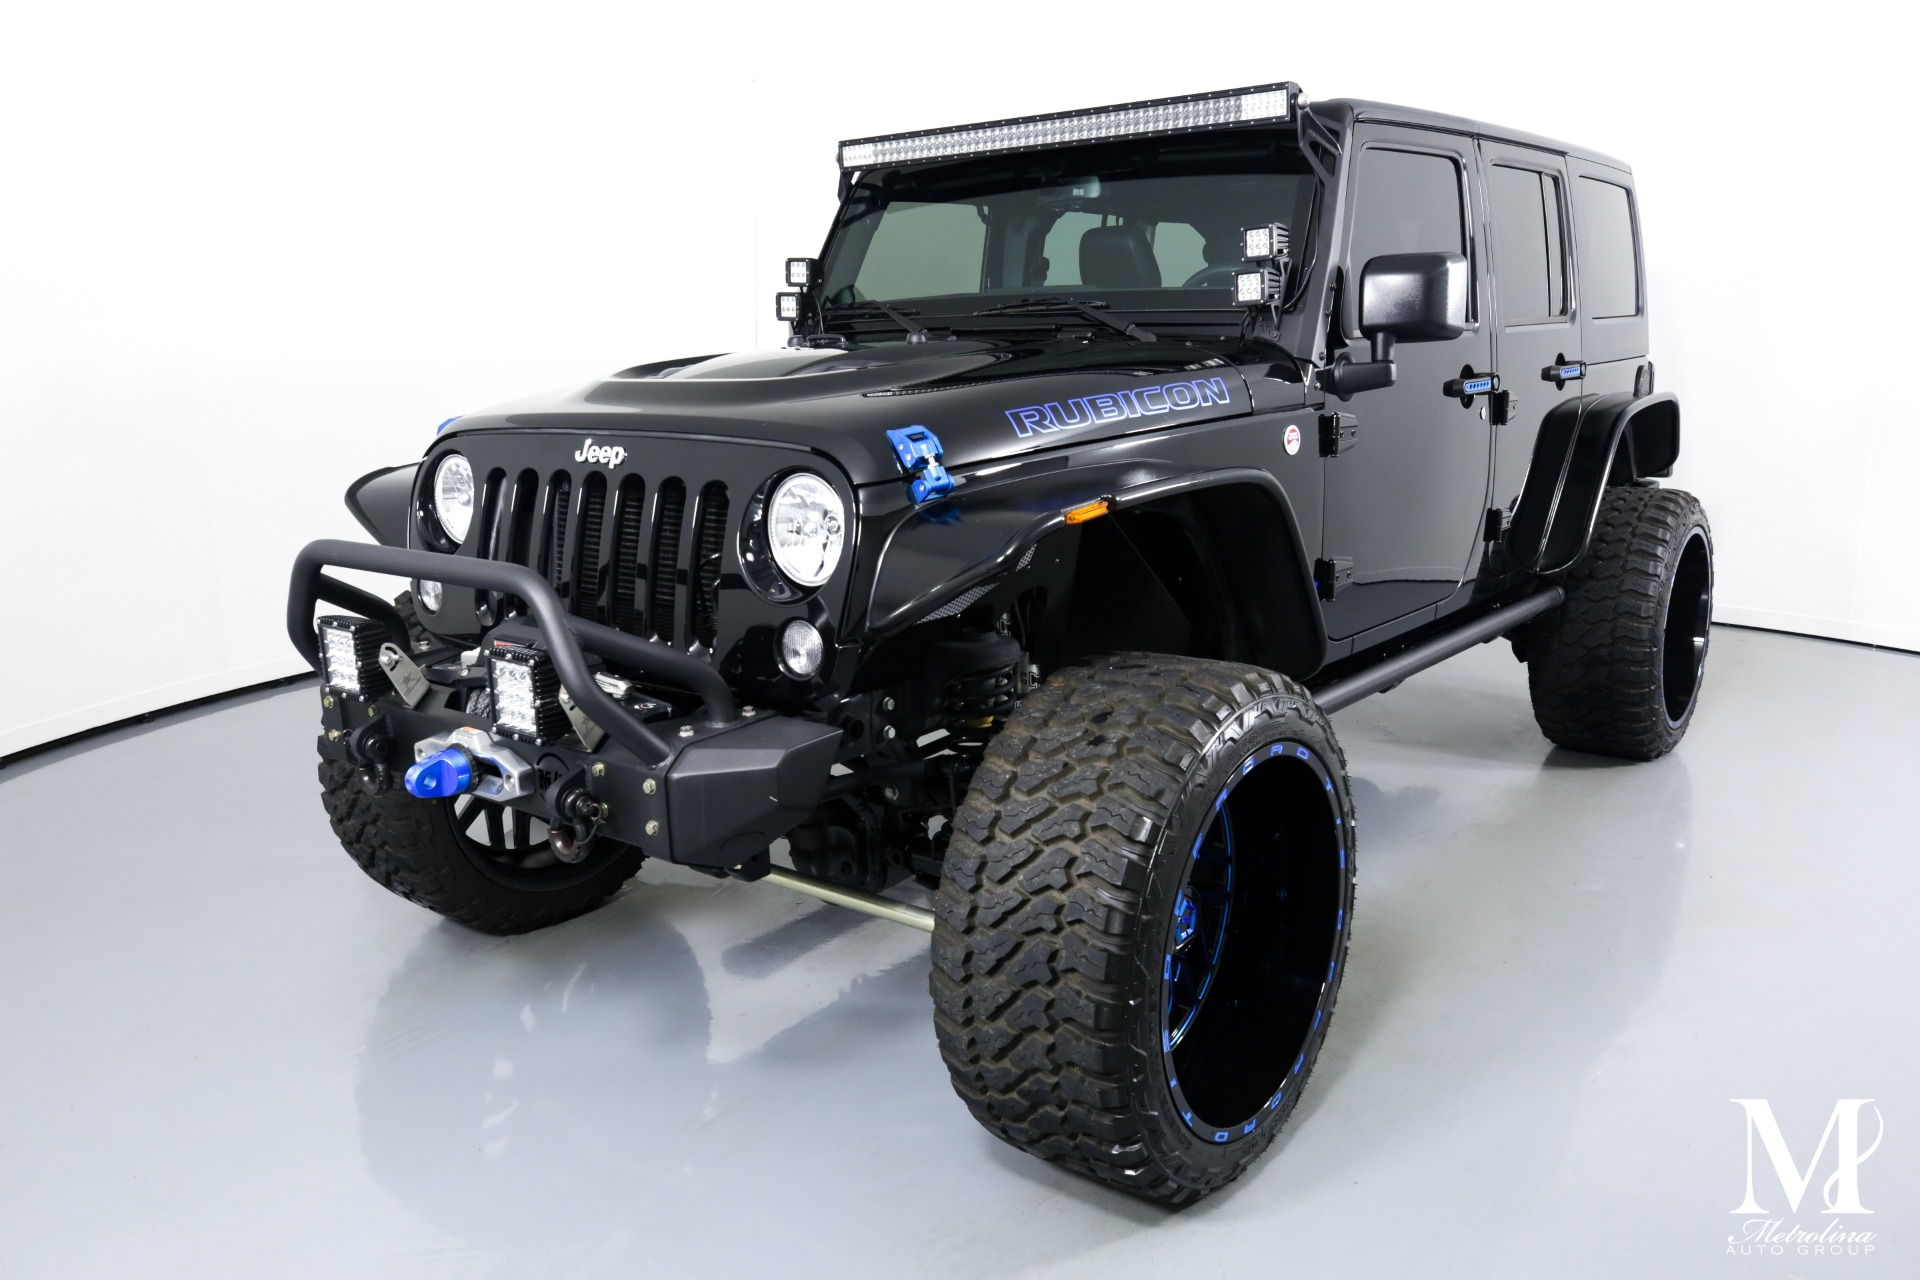 Used 2014 Jeep Wrangler Unlimited Rubicon for sale $47,996 at Metrolina Auto Group in Charlotte NC 28217 - 4